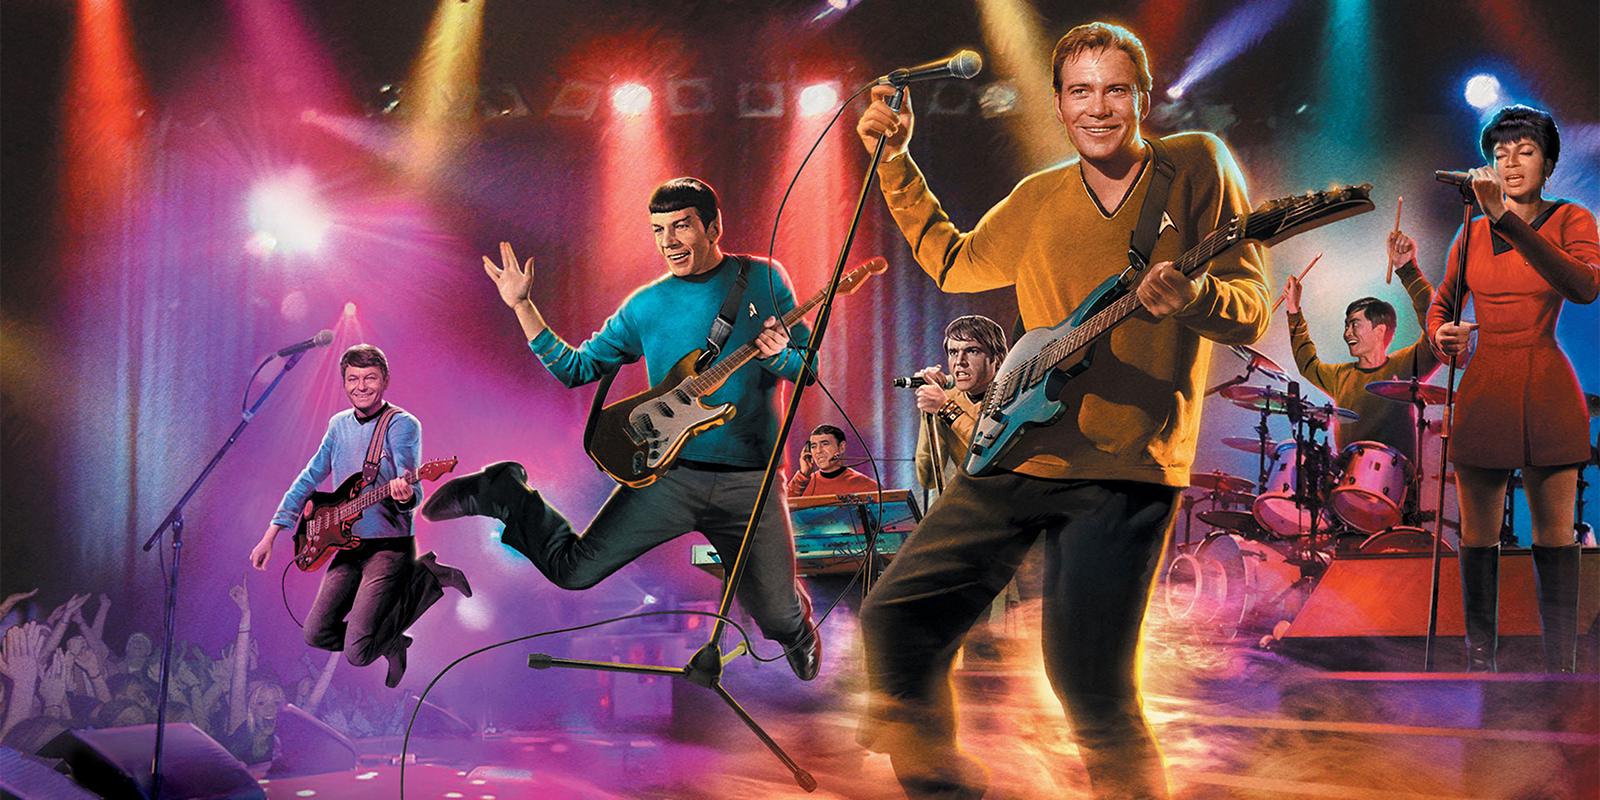 The crew of the Starship Enterprise, from Star Trek, in a rock band